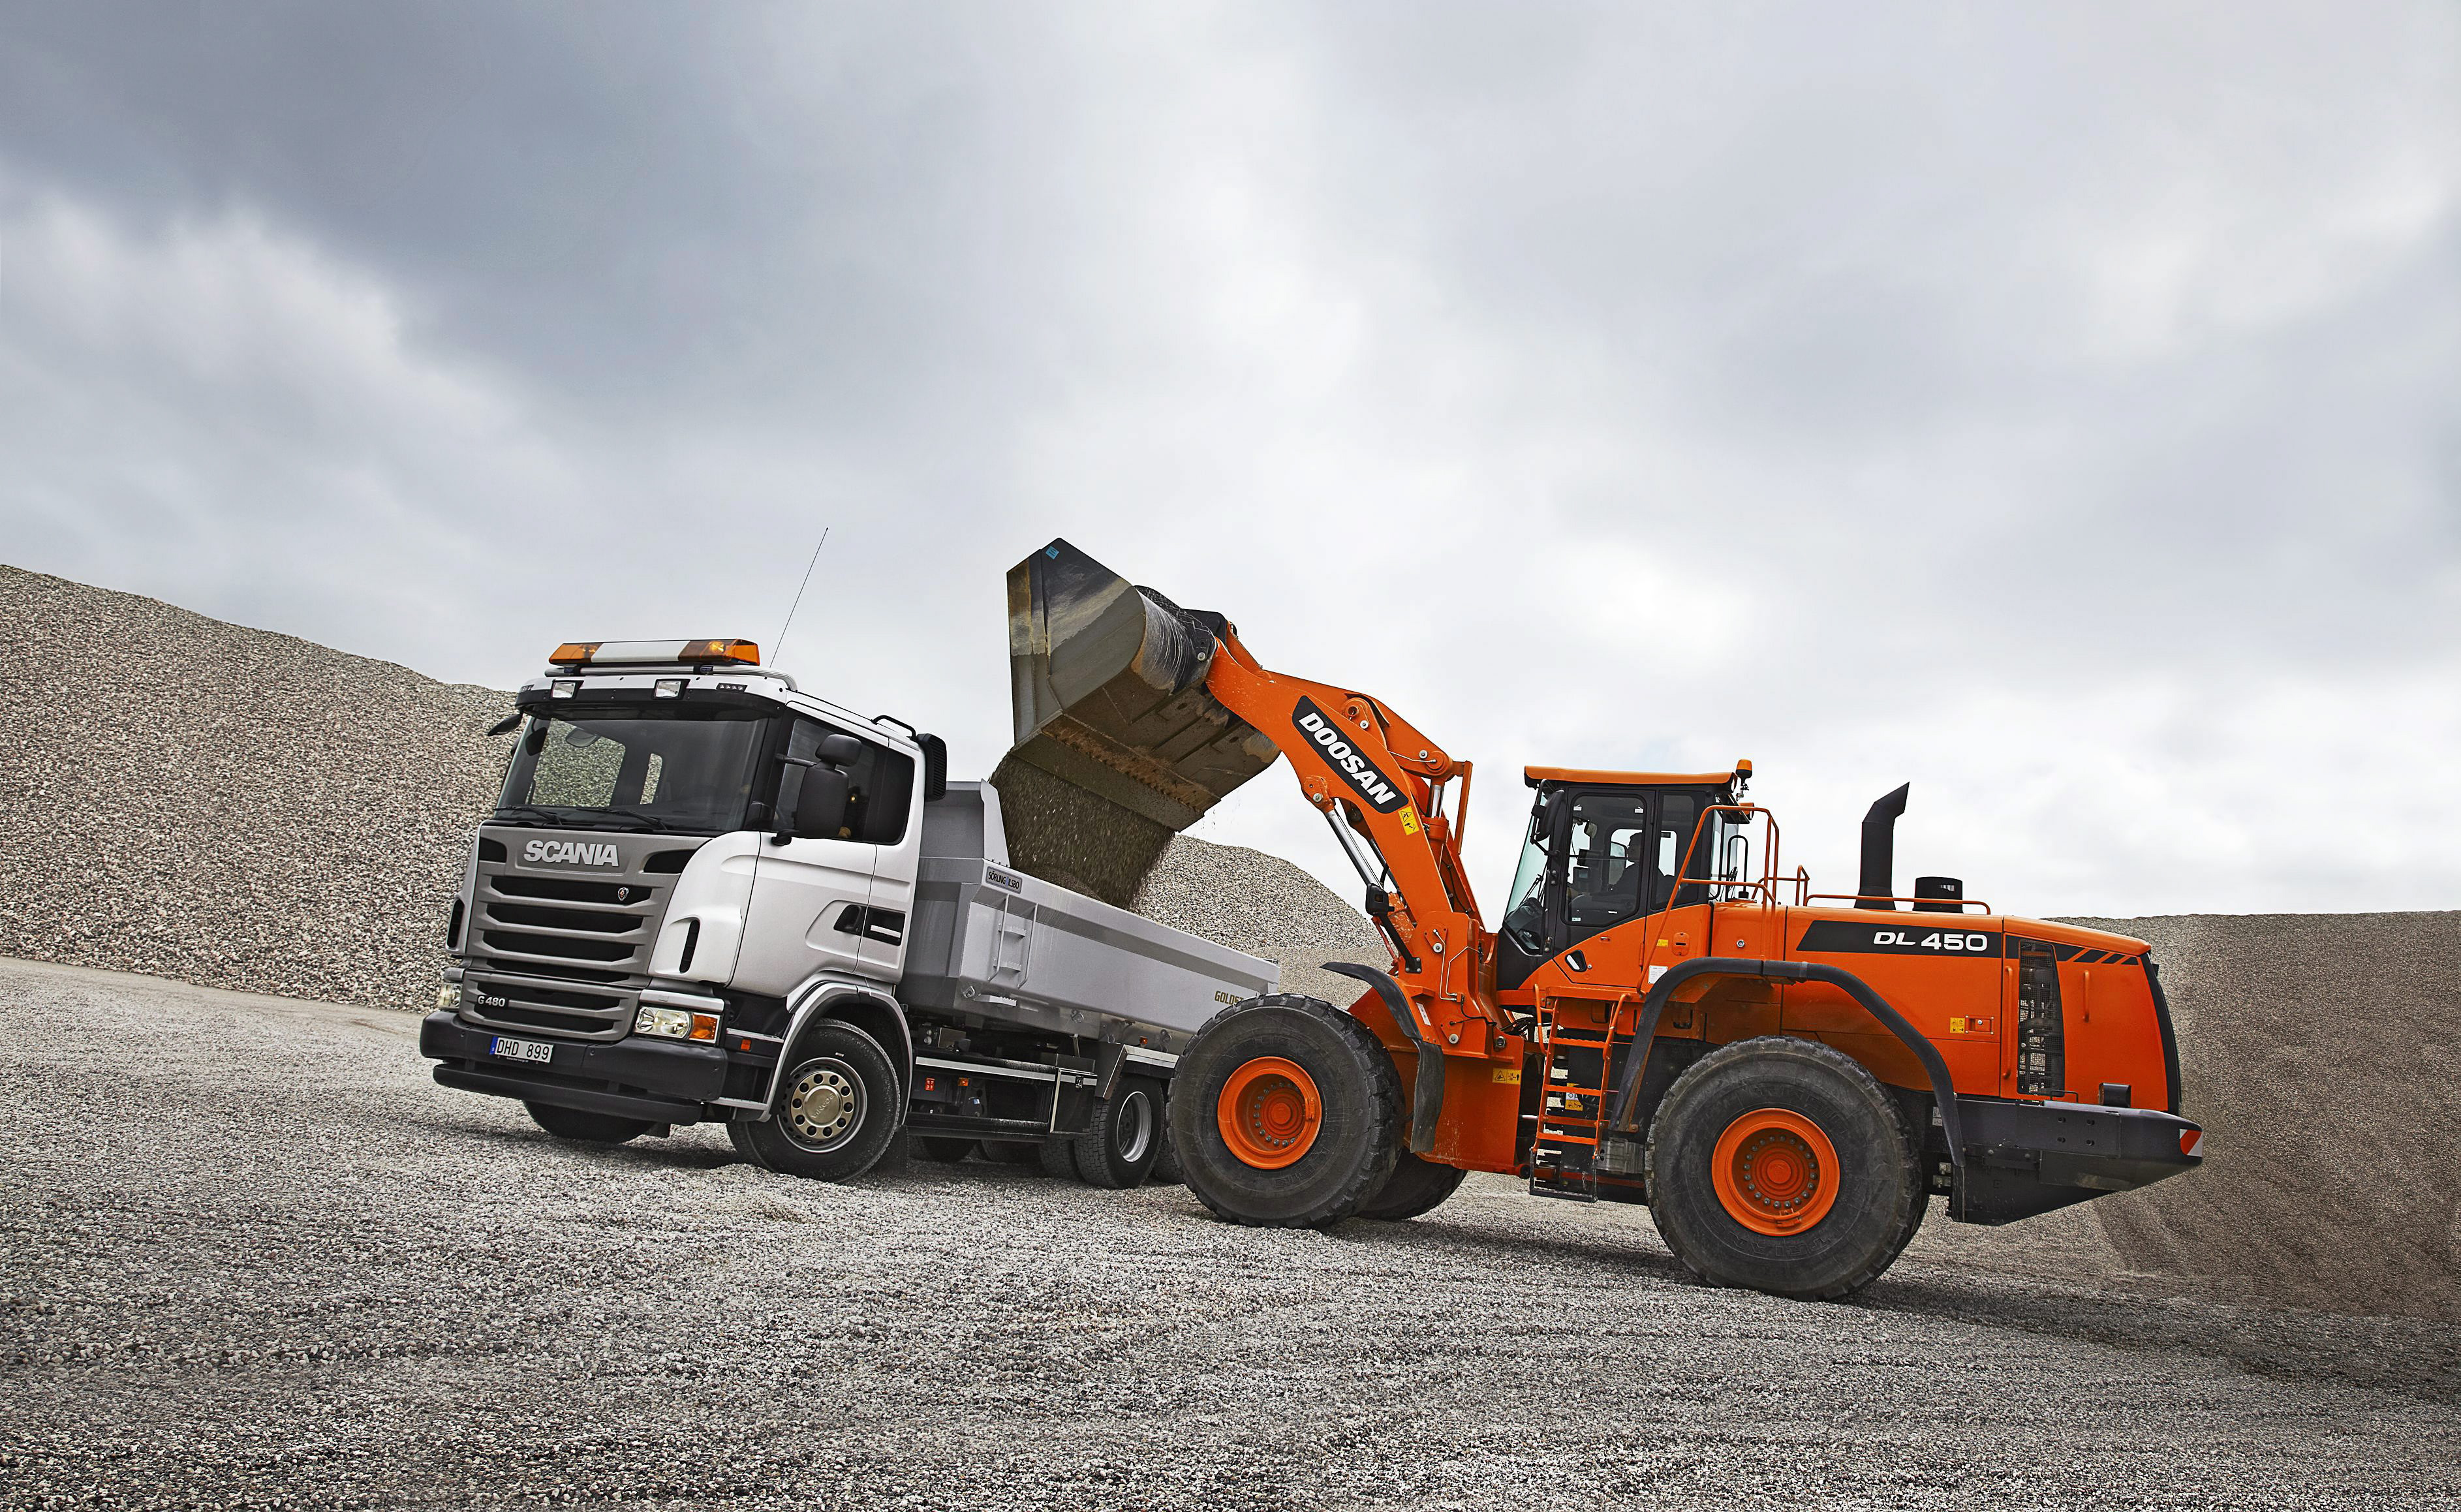 Scania G 480 6x4 tipper with trailer and Doosan DL450. Wheel loader powered by Scania 13-litre Stage 3b/Tier4i, industrial engine.  Skibby, Denmark Photo: Göran Wink 2012